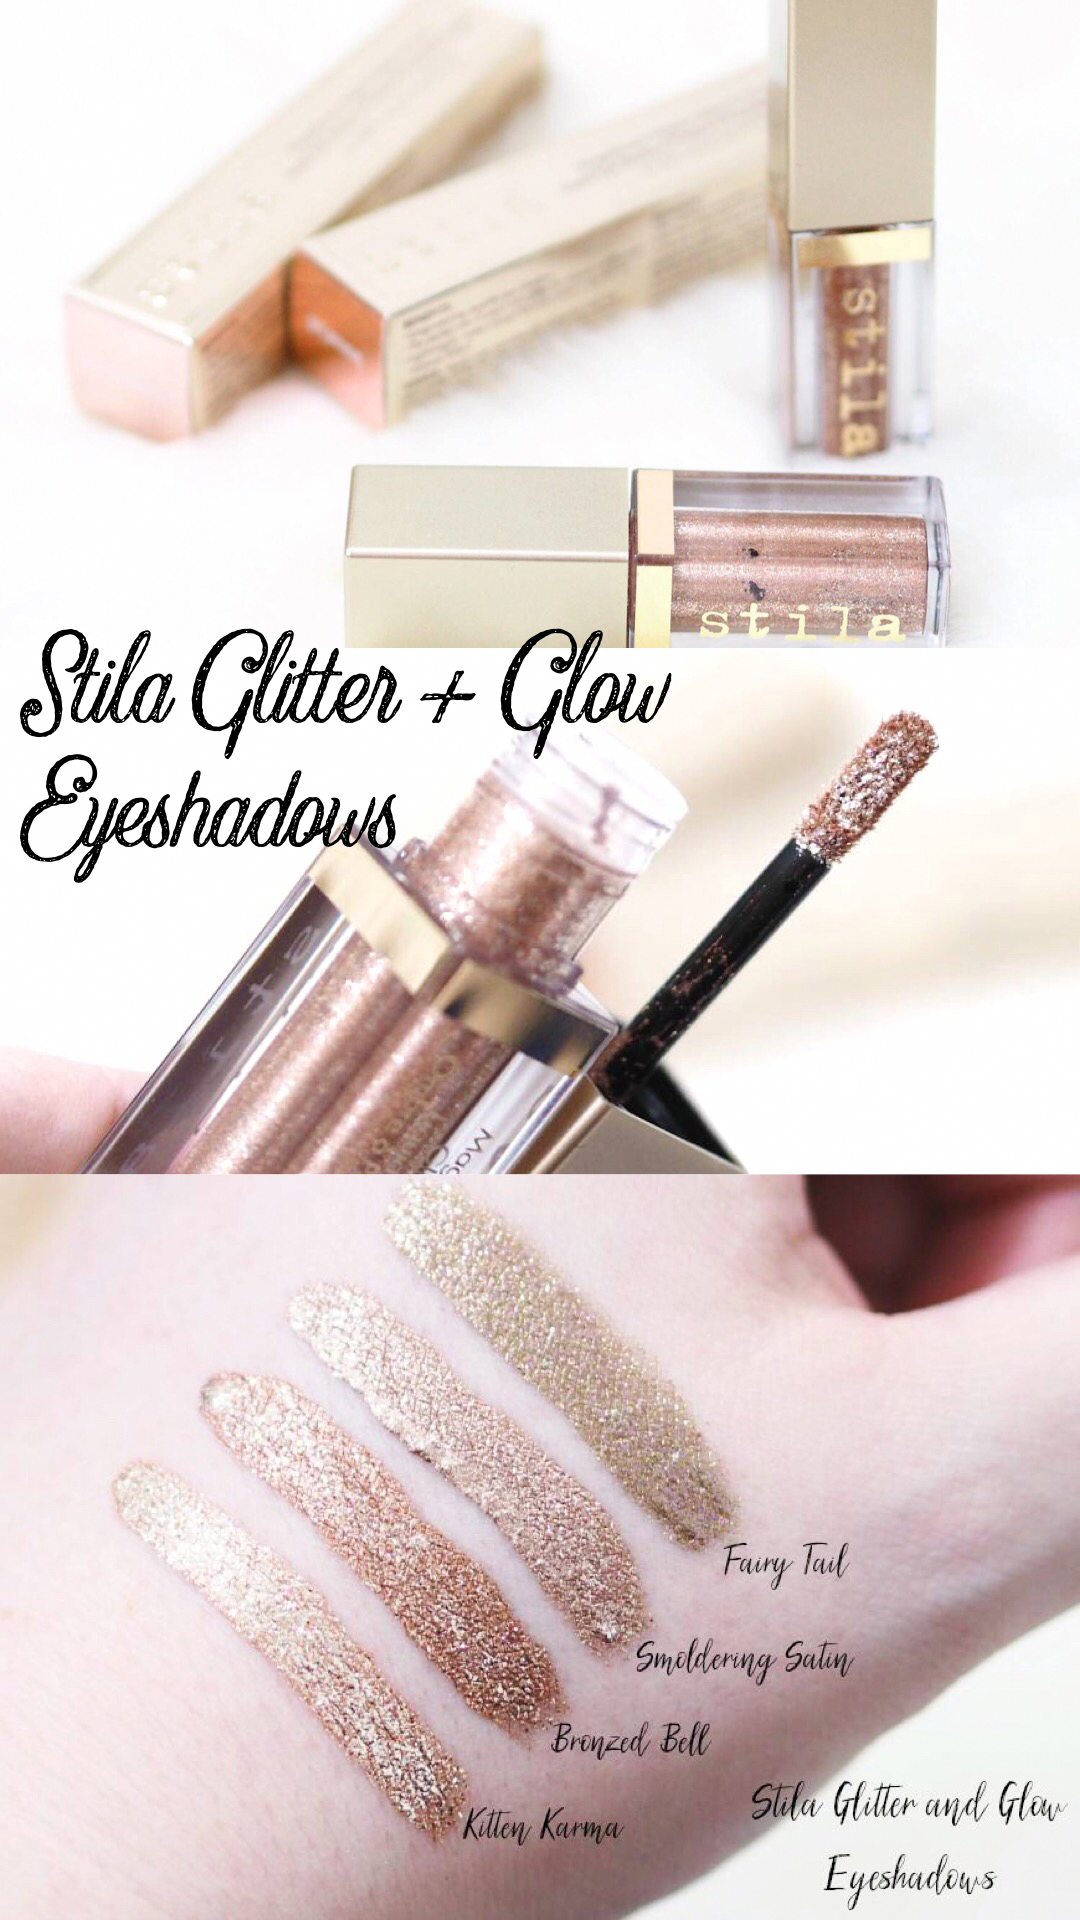 Stila Glitter And Glow Liquid Glitter Eyeshadows Ft Kitten Karma Fairy Tail Bronzed Bell An Stila Glitter And Glow Glitter Eyeshadow Stila Glitter Eyeshadow